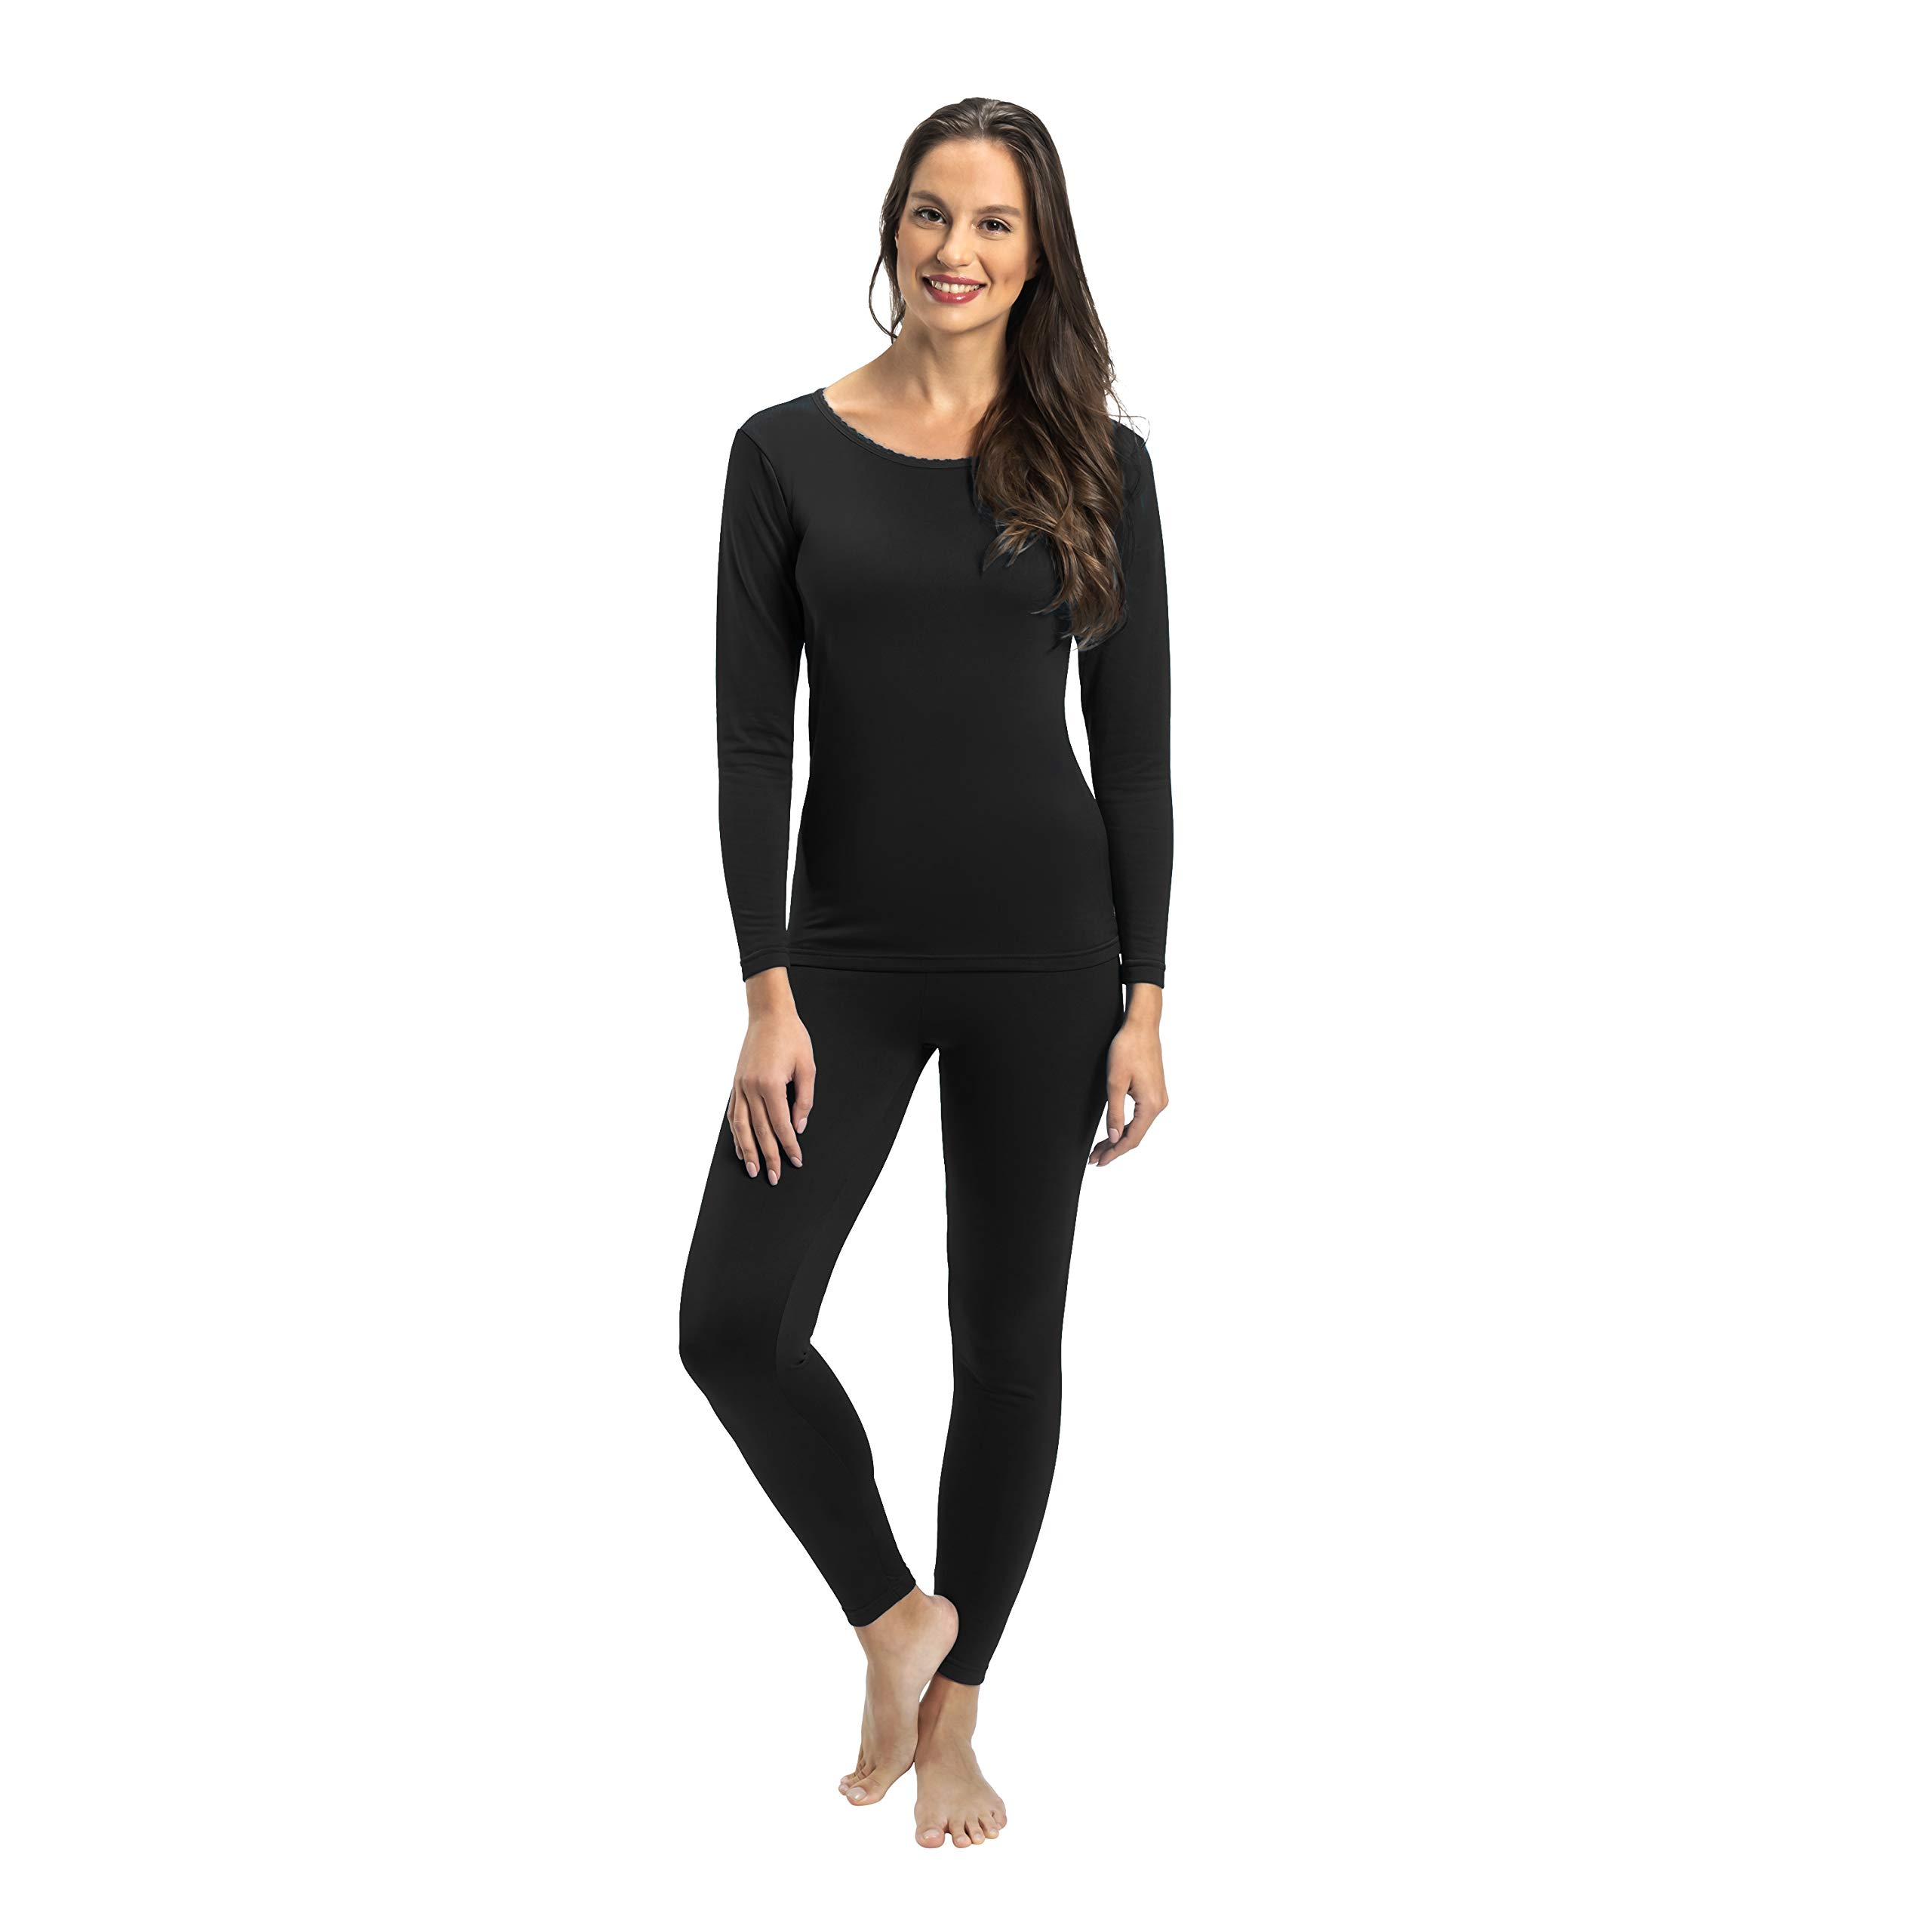 Rocky Womens Thermal 2 Pc Long John Underwear Set Top and Bottom Smooth Knit (3Xlarge, Black) by Rocky